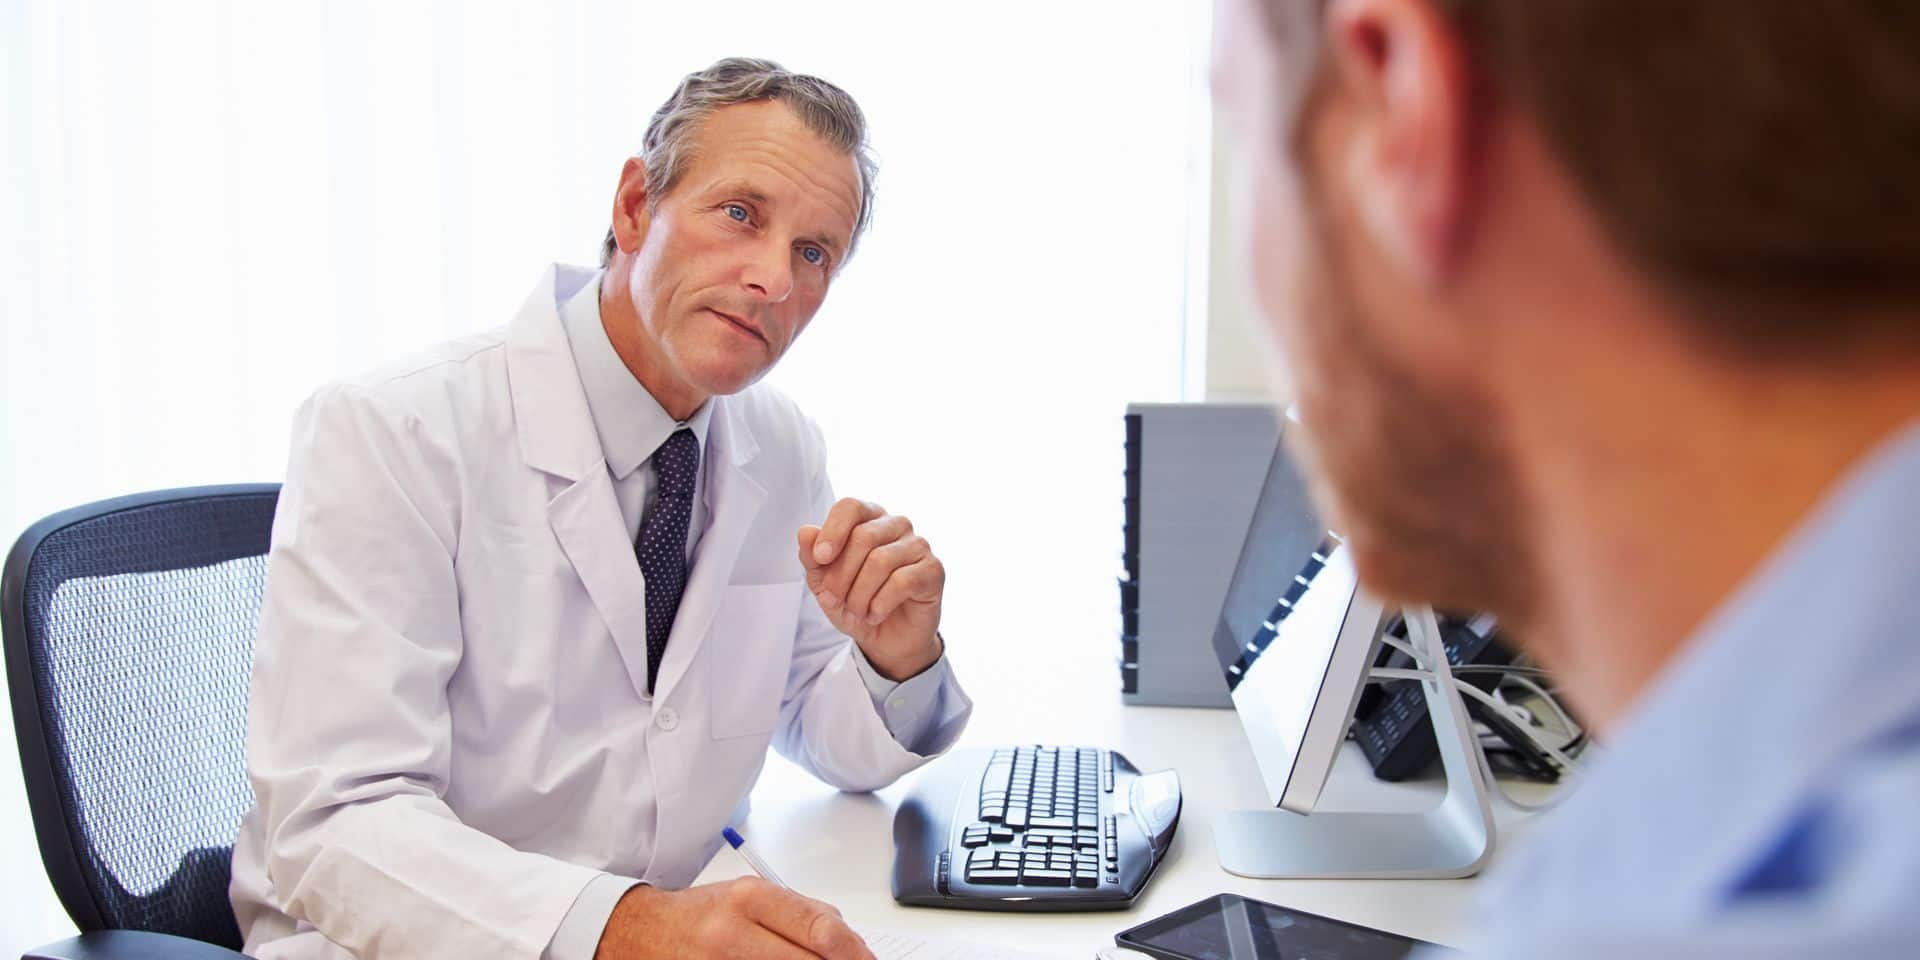 Male,Patient,Having,Consultation,With,Doctor,In,Office